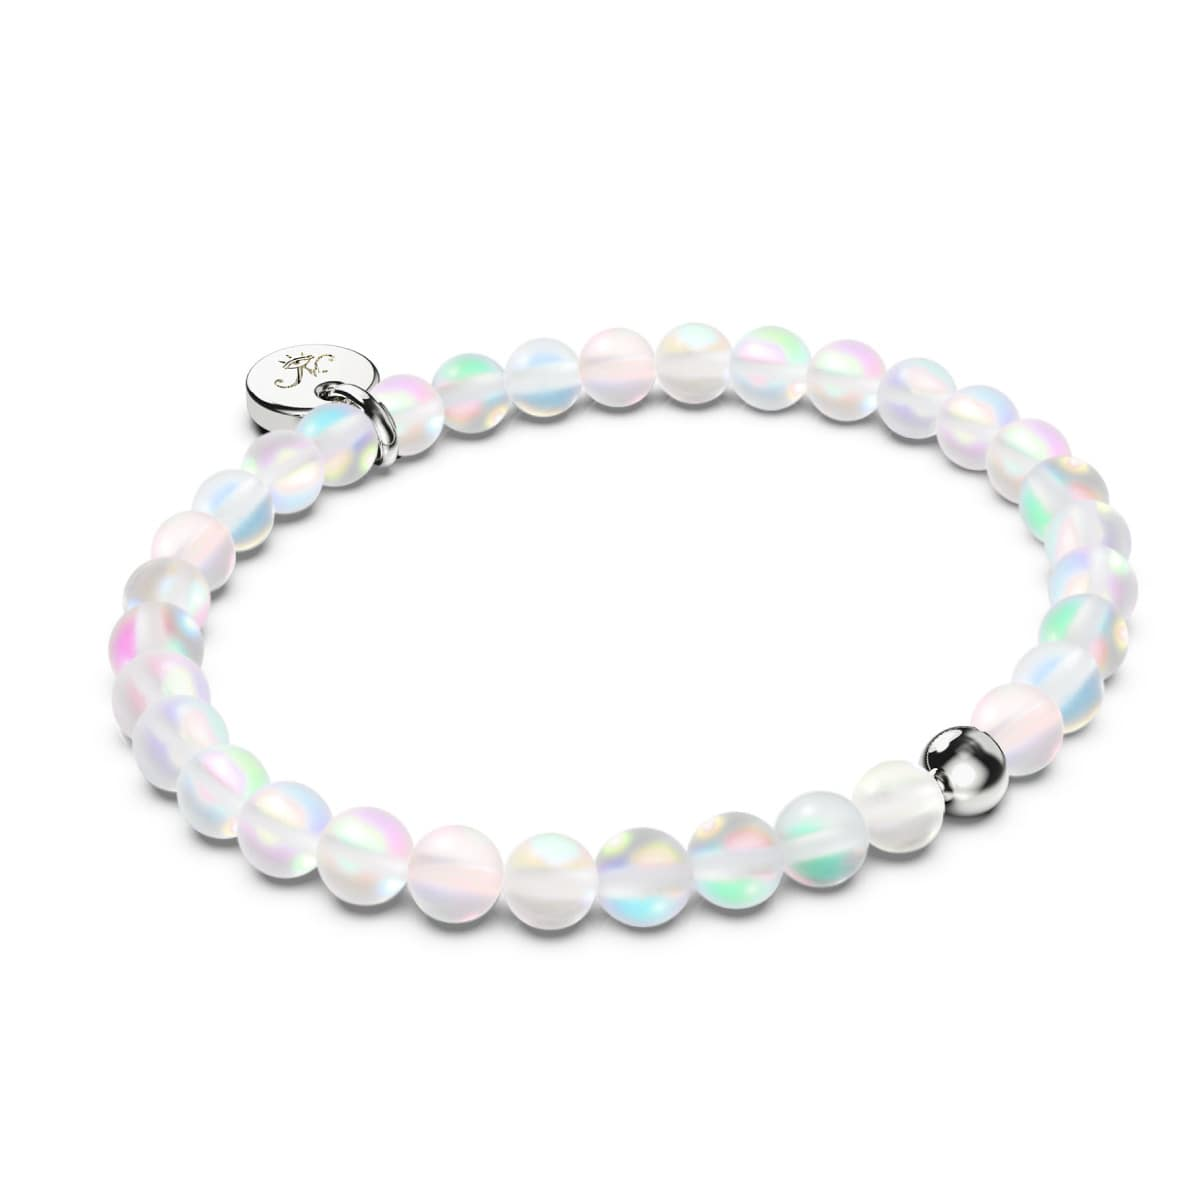 Rainbow White | Silver | Mermaid Glass Bead Bracelet